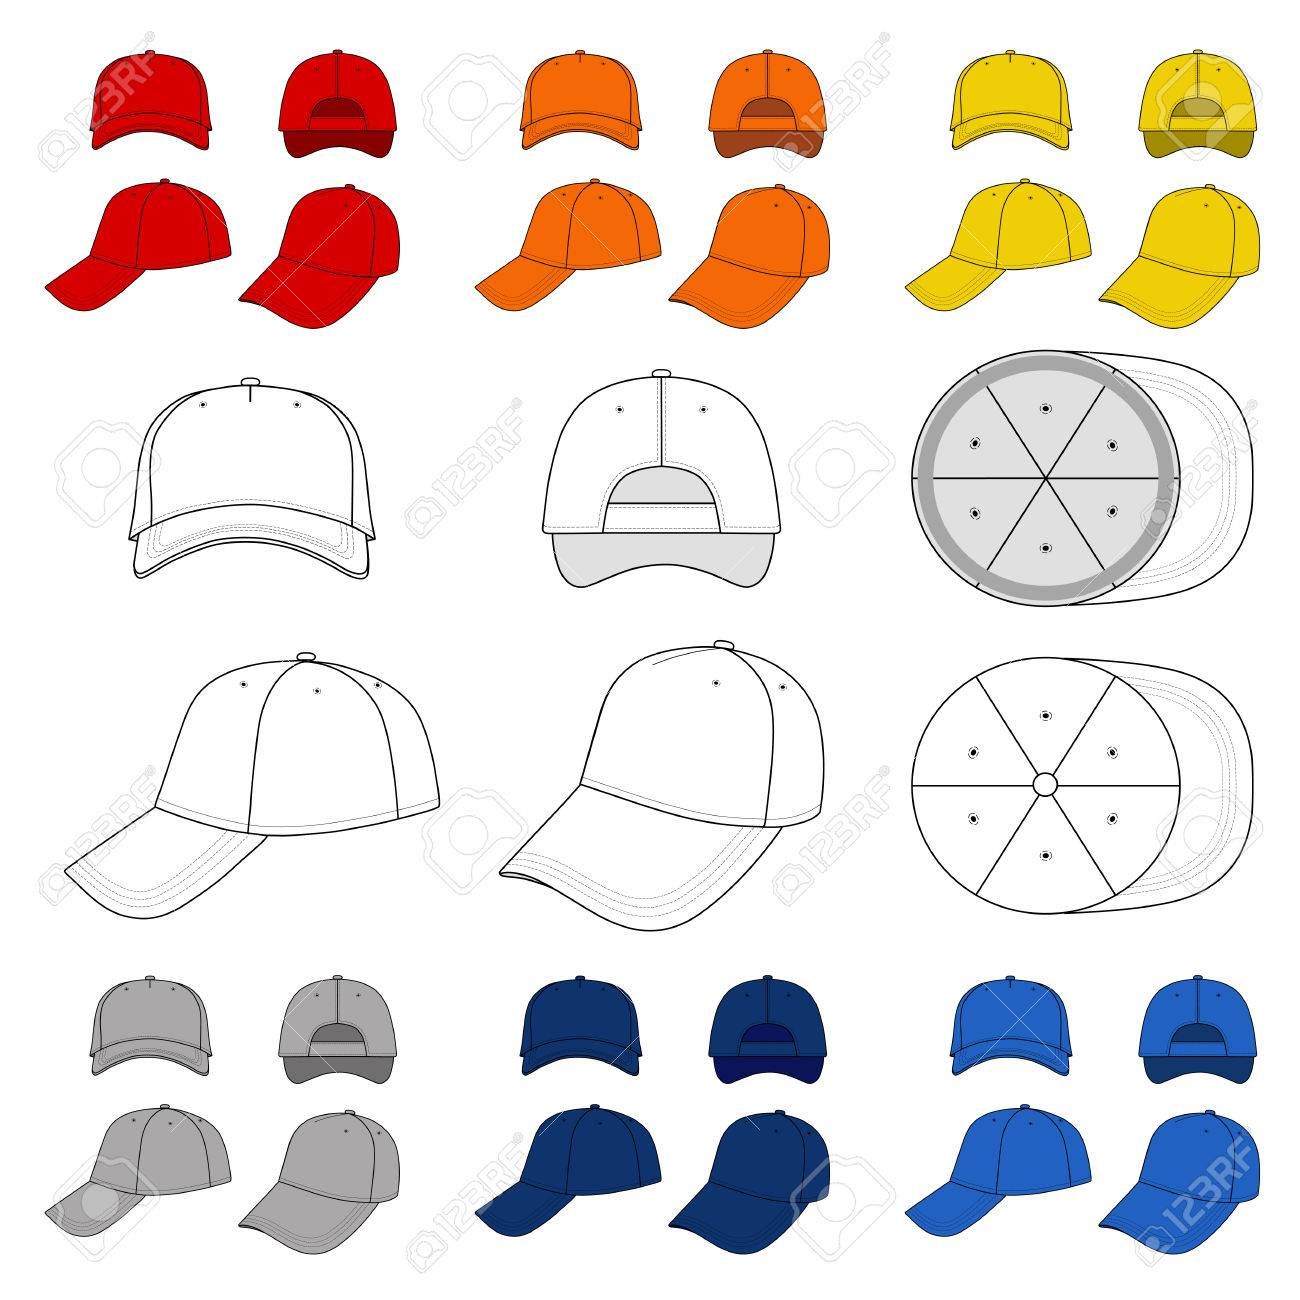 Many-coloured Baseball f08d2ad24b2